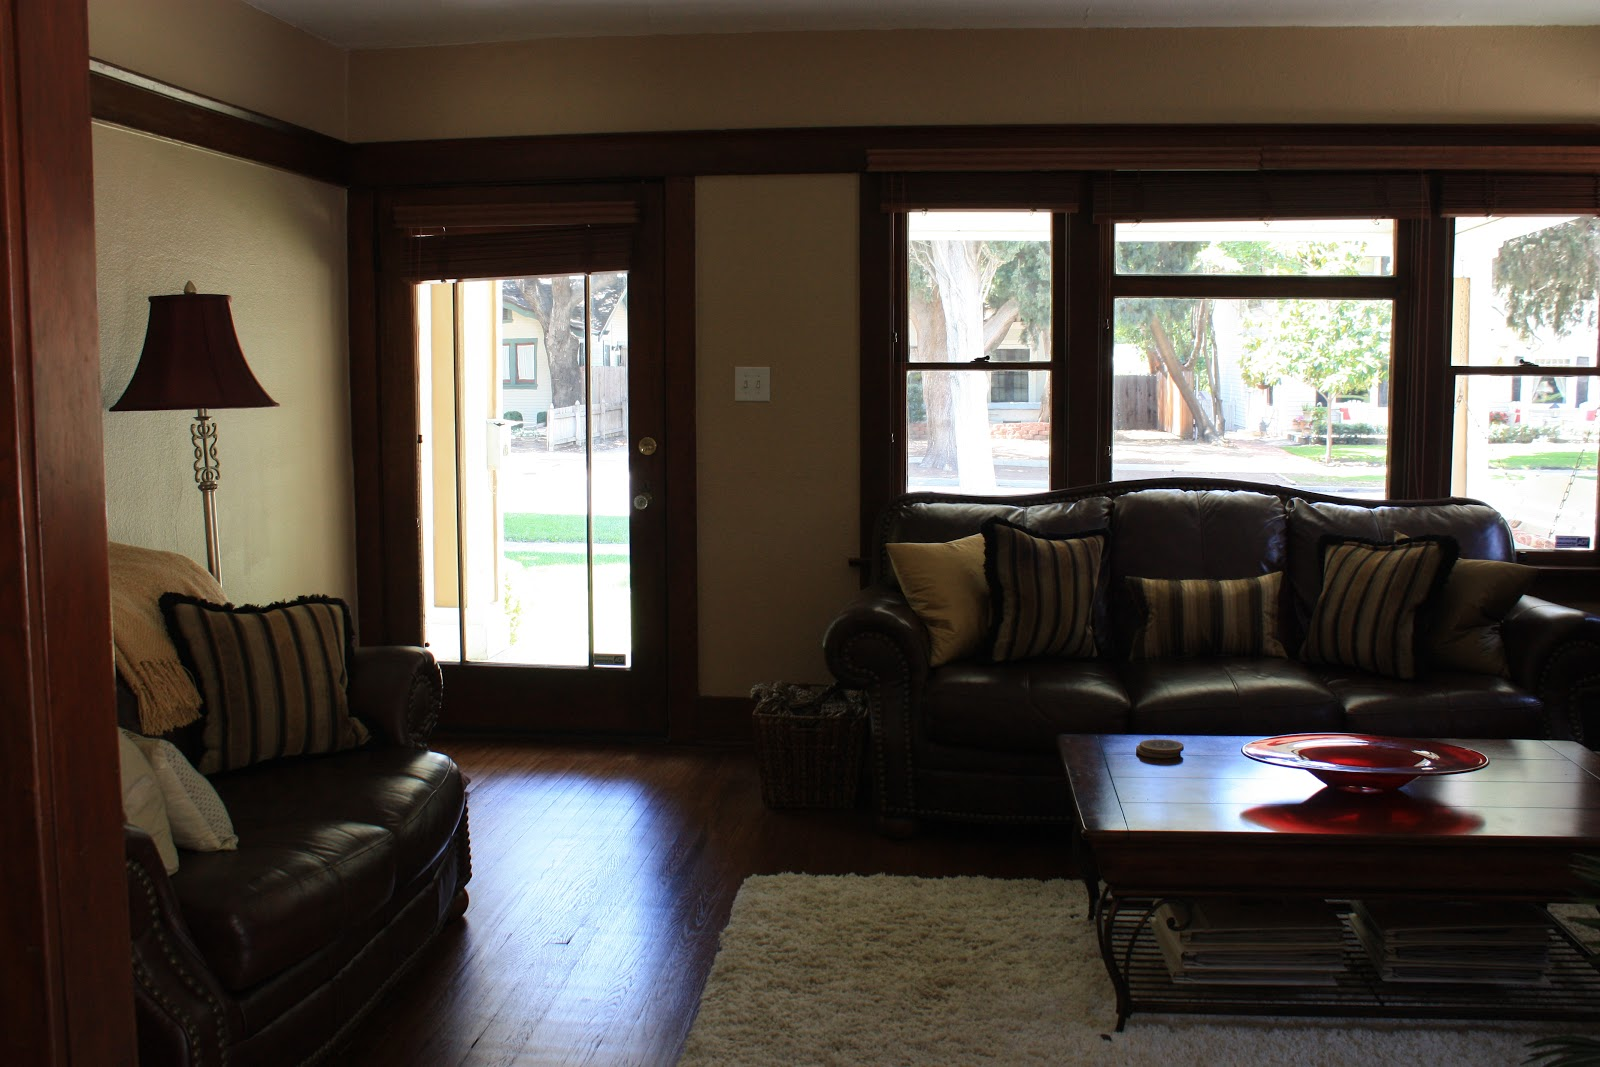 Average family room - The First Room On The List Is Our Family Room Enjoy Oh And I Haven T Had Any Advice Training In Decor So Suggestions Are Welcome